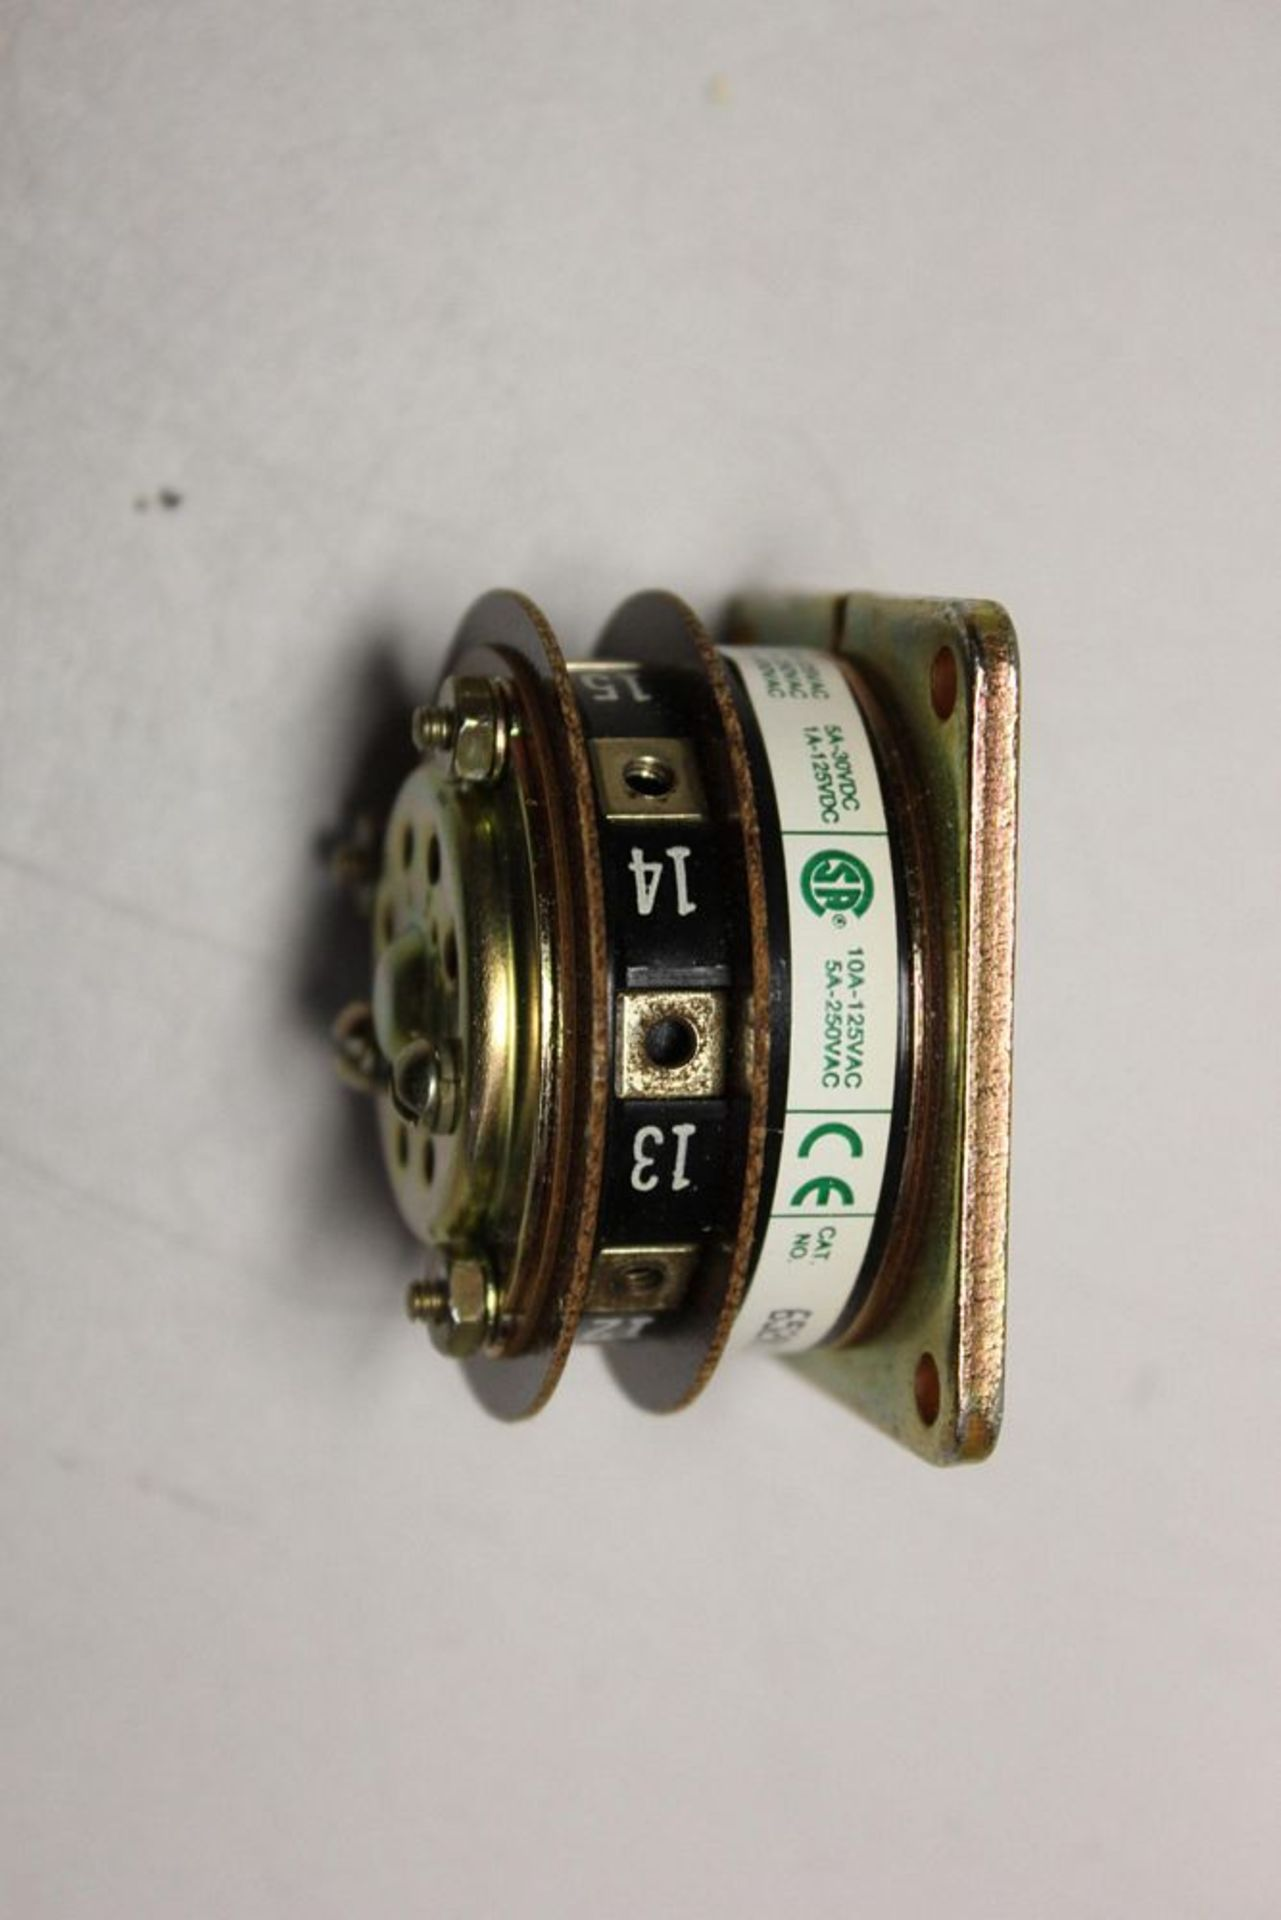 NEW ELECTROSWITCH ROTARY SWITCH - Image 7 of 8